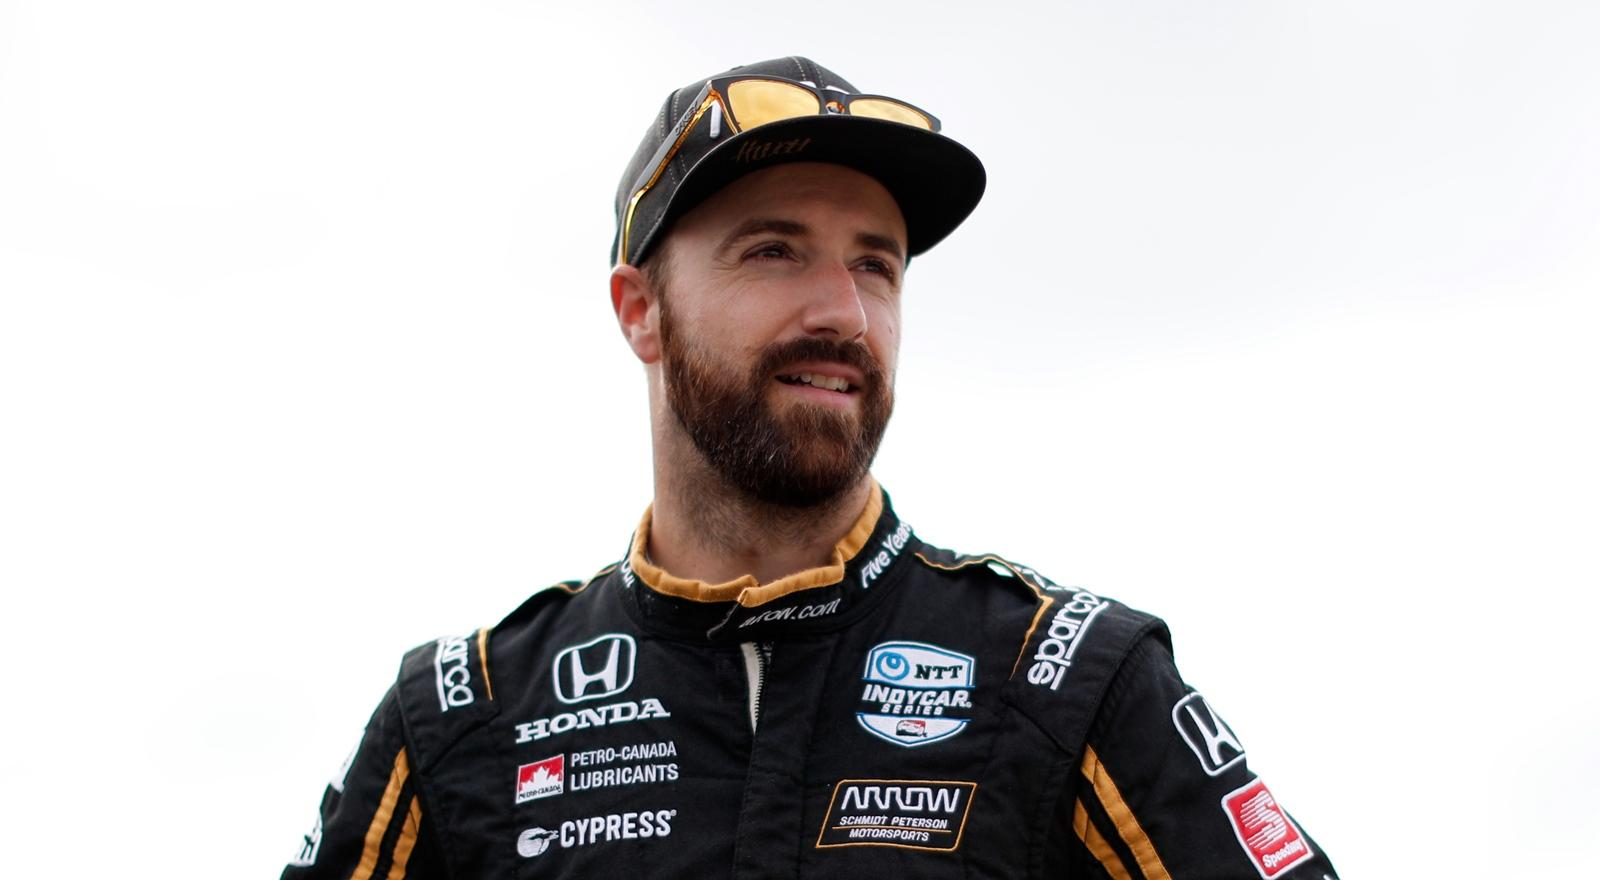 IndyCar: James Hinchcliffe open to NASCAR and Le Mans opportunities with new sponsor – Motorsport Week